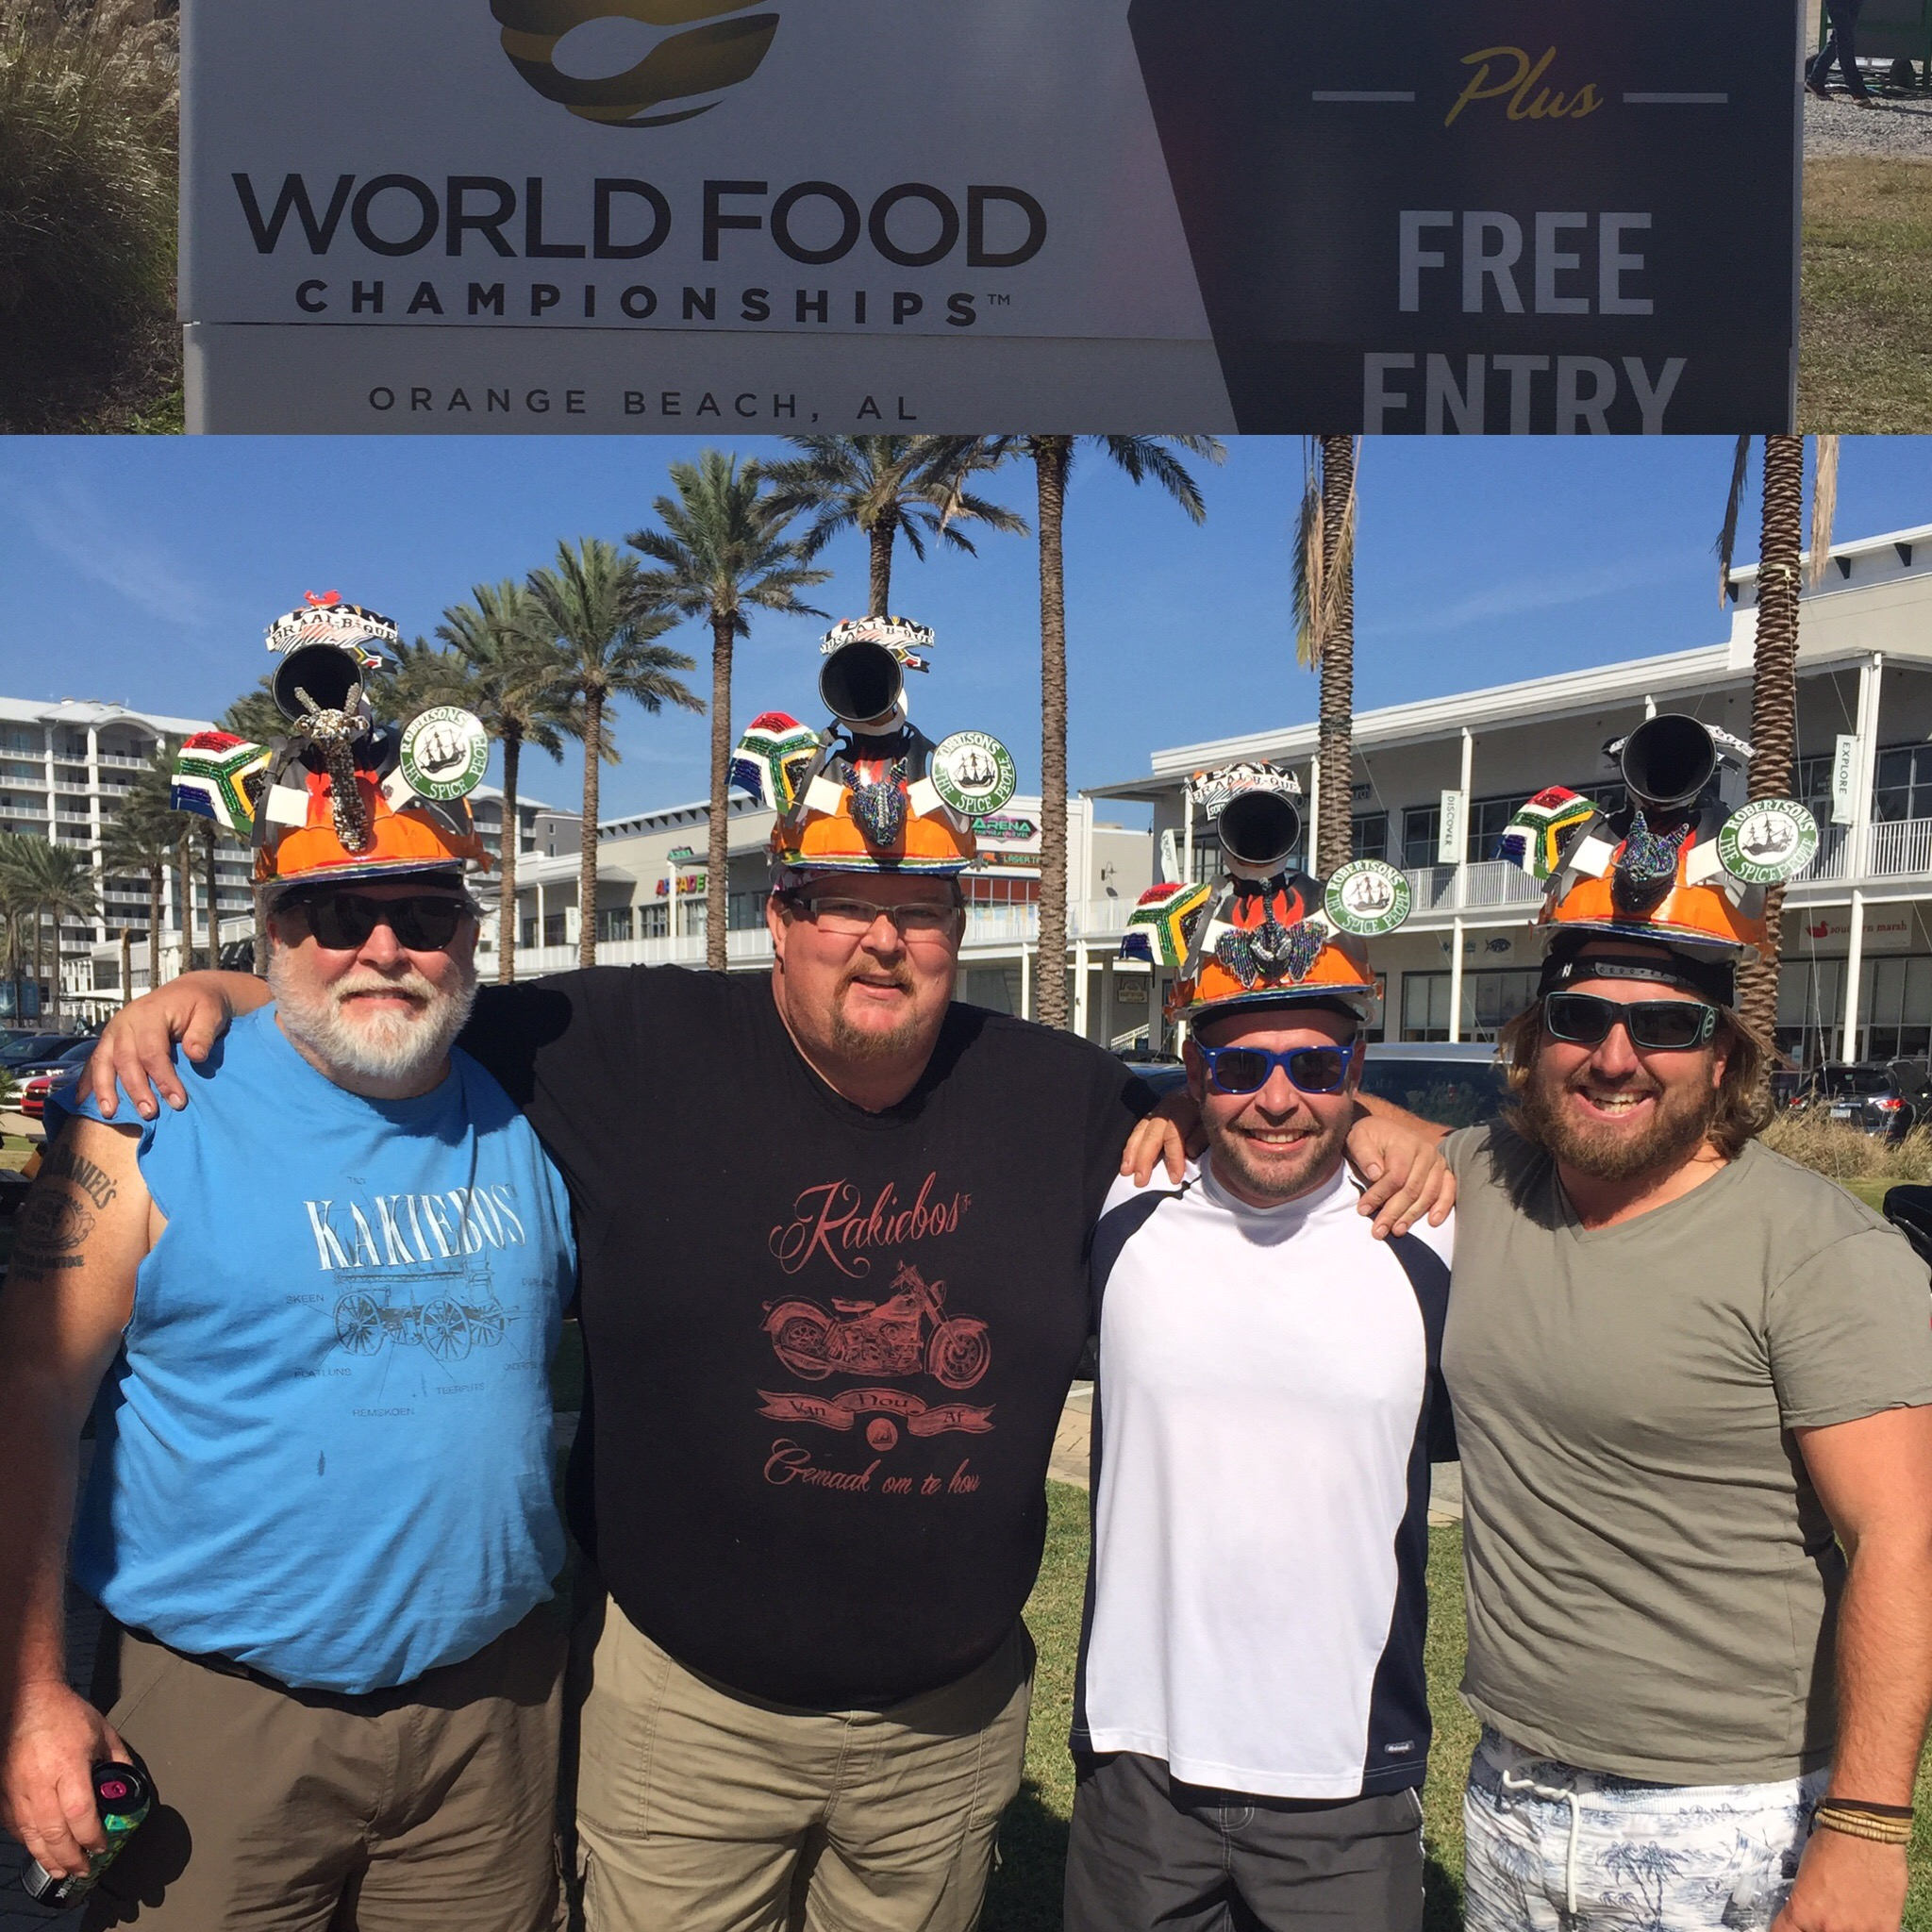 Competitors at World Food Championships